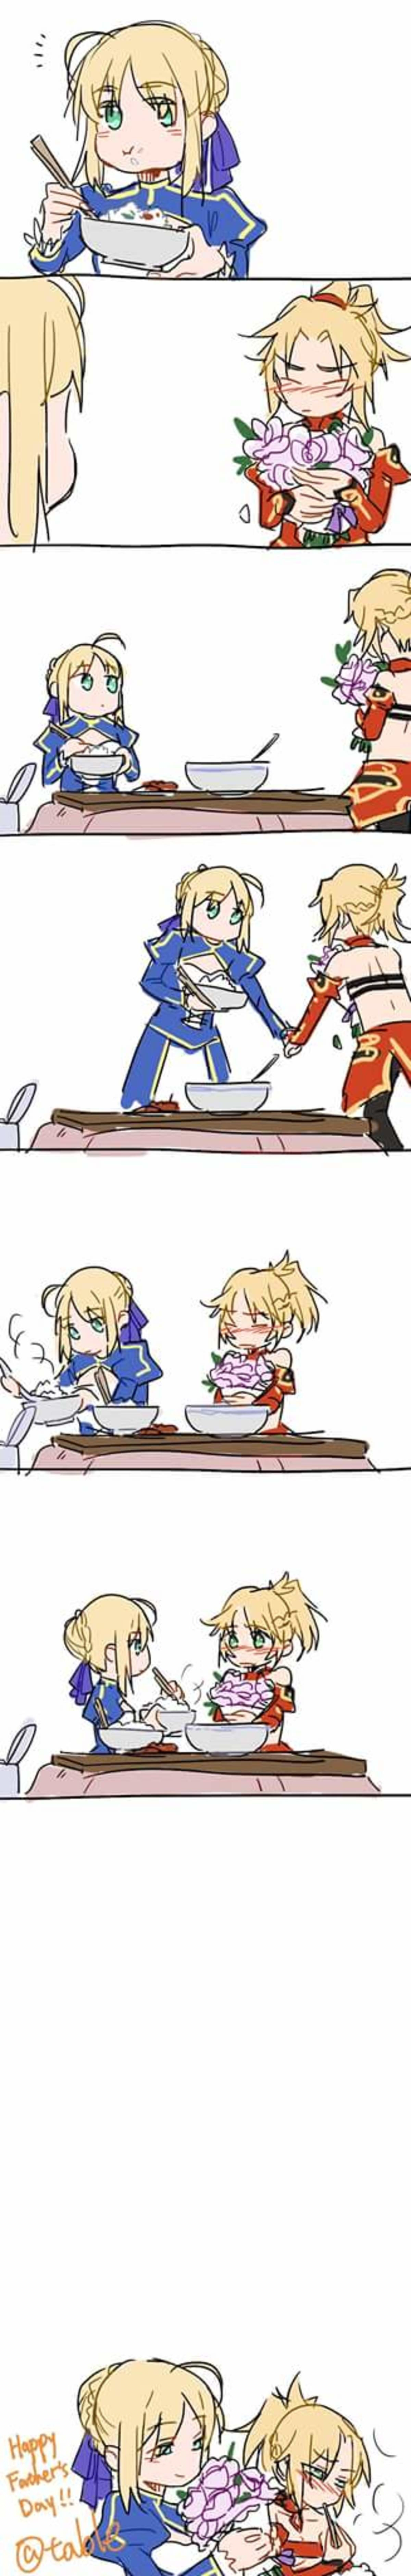 A Little Late But. join list: SmolHol (1445 subs)Mention History join list:. Happy but still kinda sad considering how much Mordred seems to catch at times.